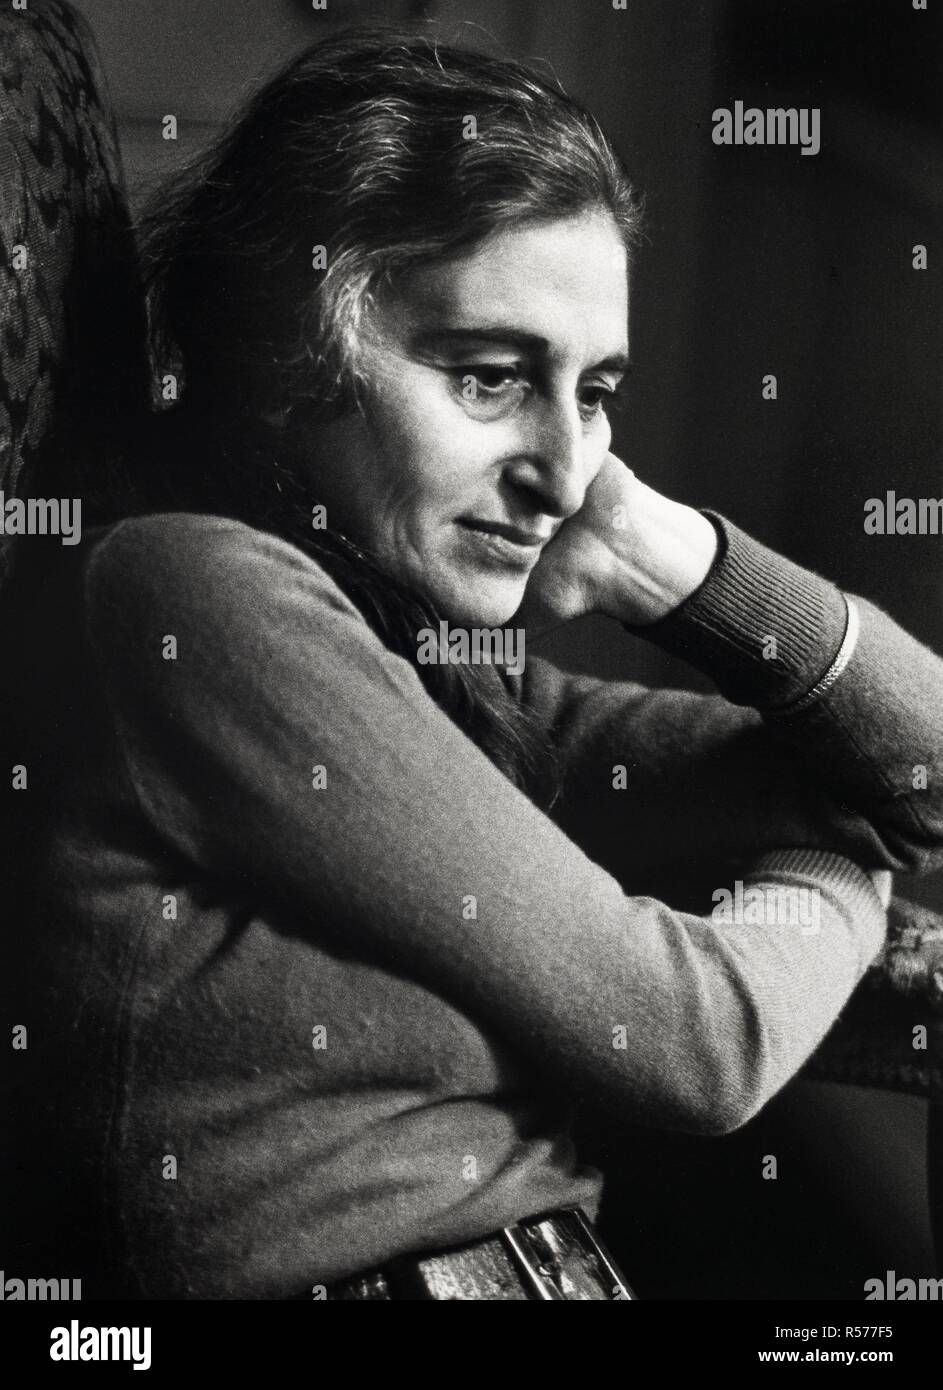 Ruth Prawer Jhabvala. Monochrome. Source: FG2499-1-23.Stock Photo